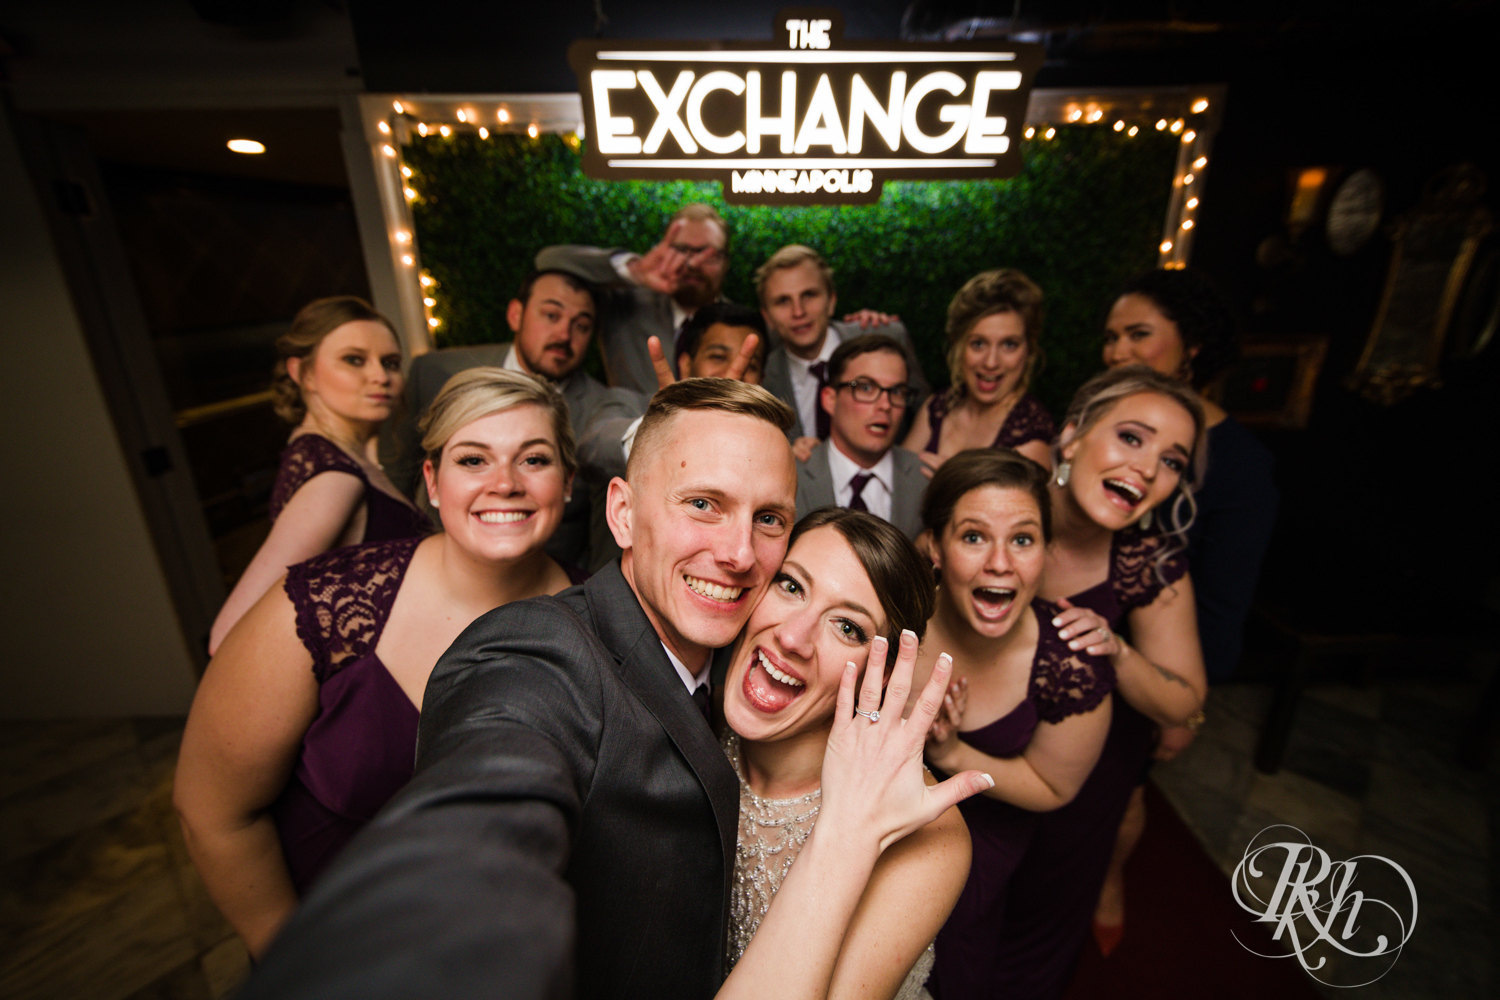 Jillian & Jared - Minnesota Wedding Photography - Lumber Exchange Event Center - RKH Images - Blog (37 of 87).jpg